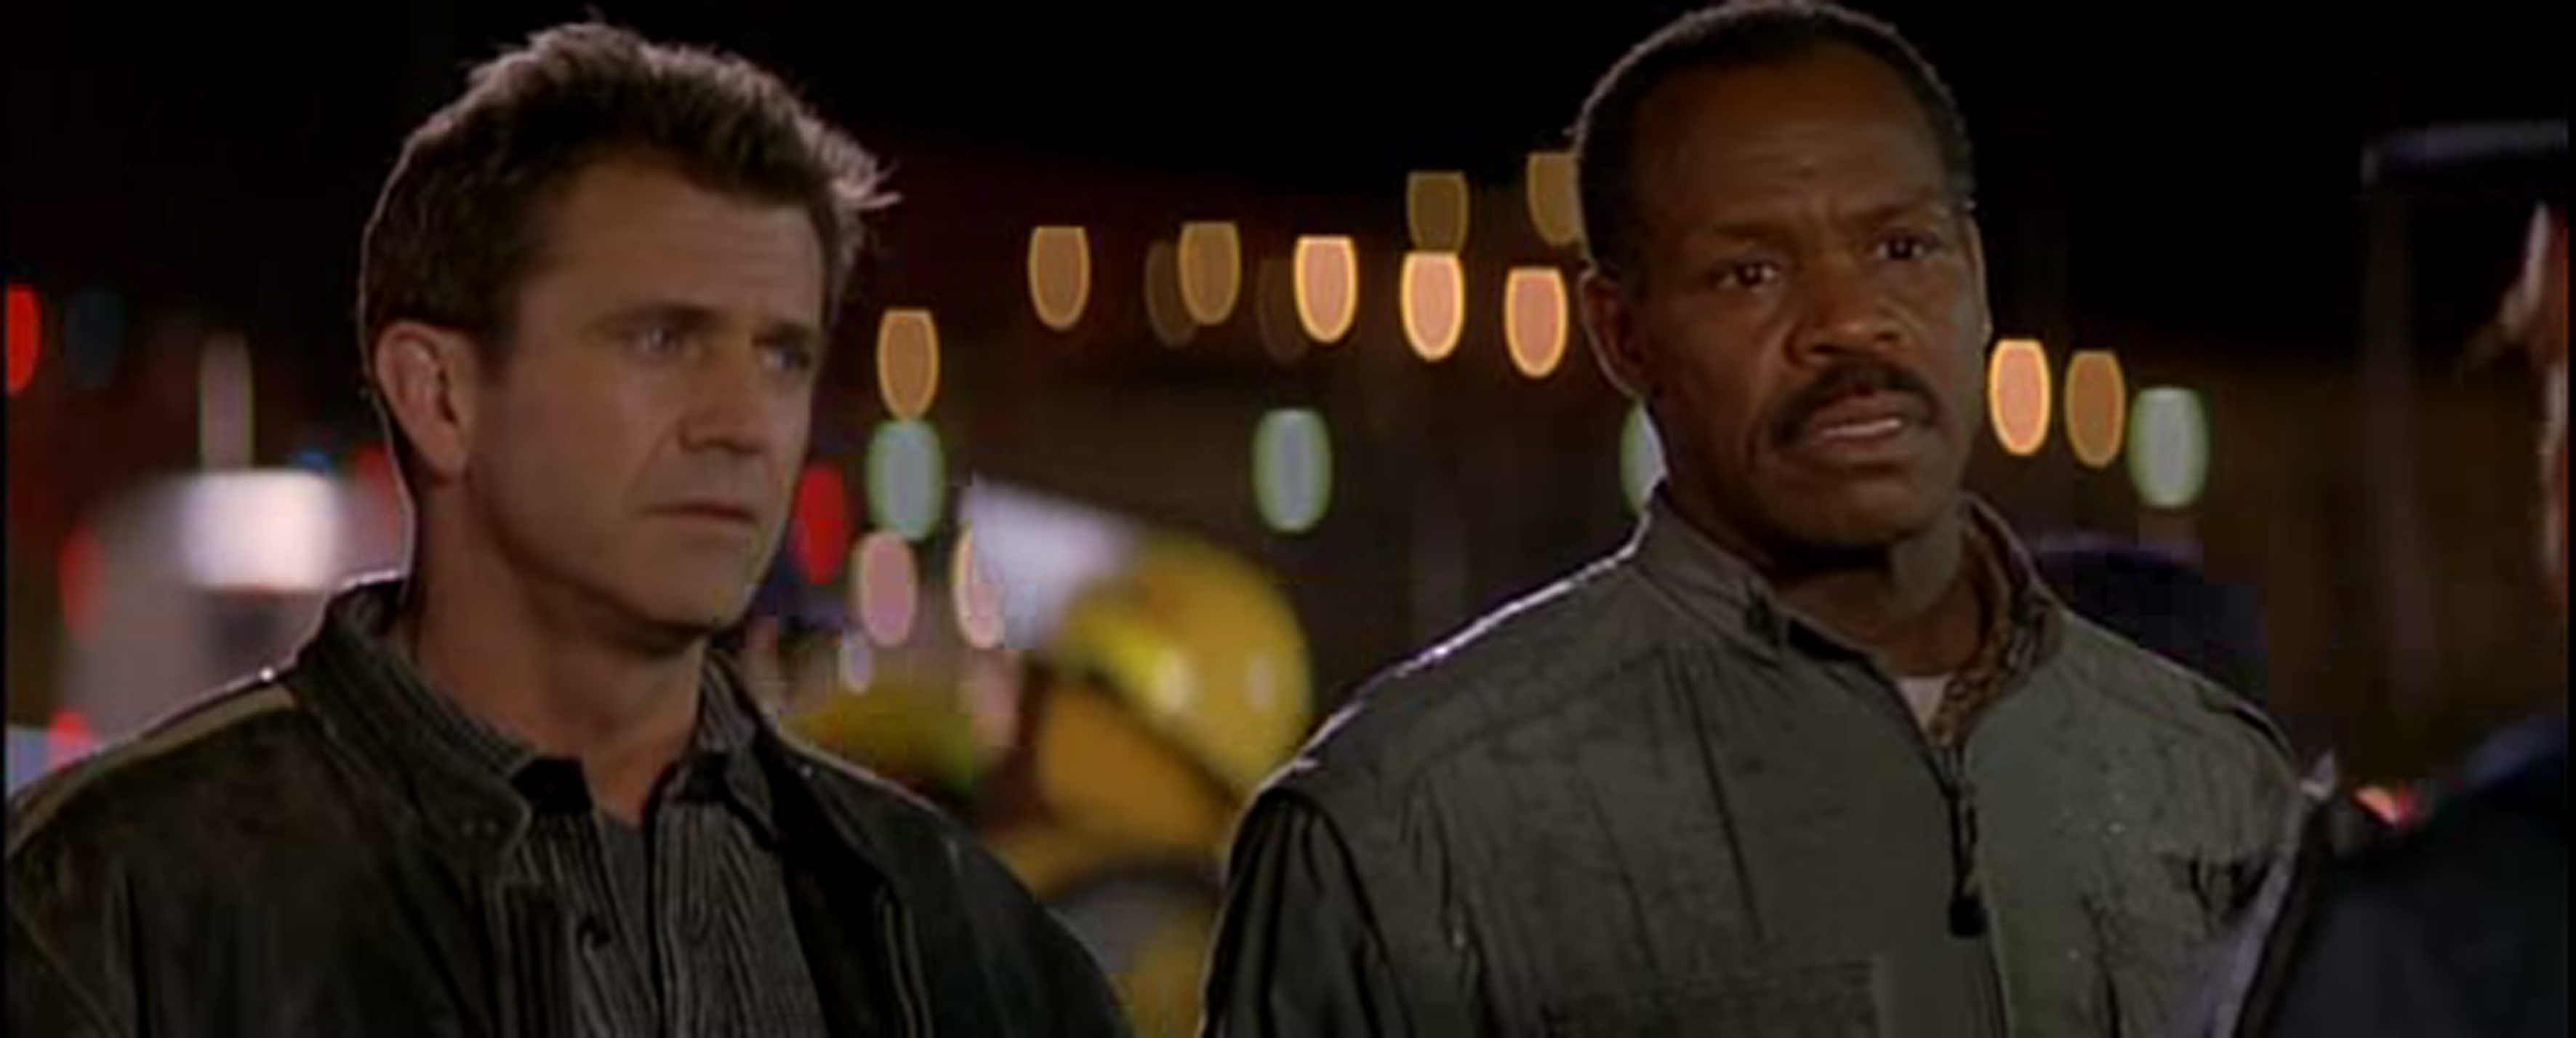 File:lethal weapon 4